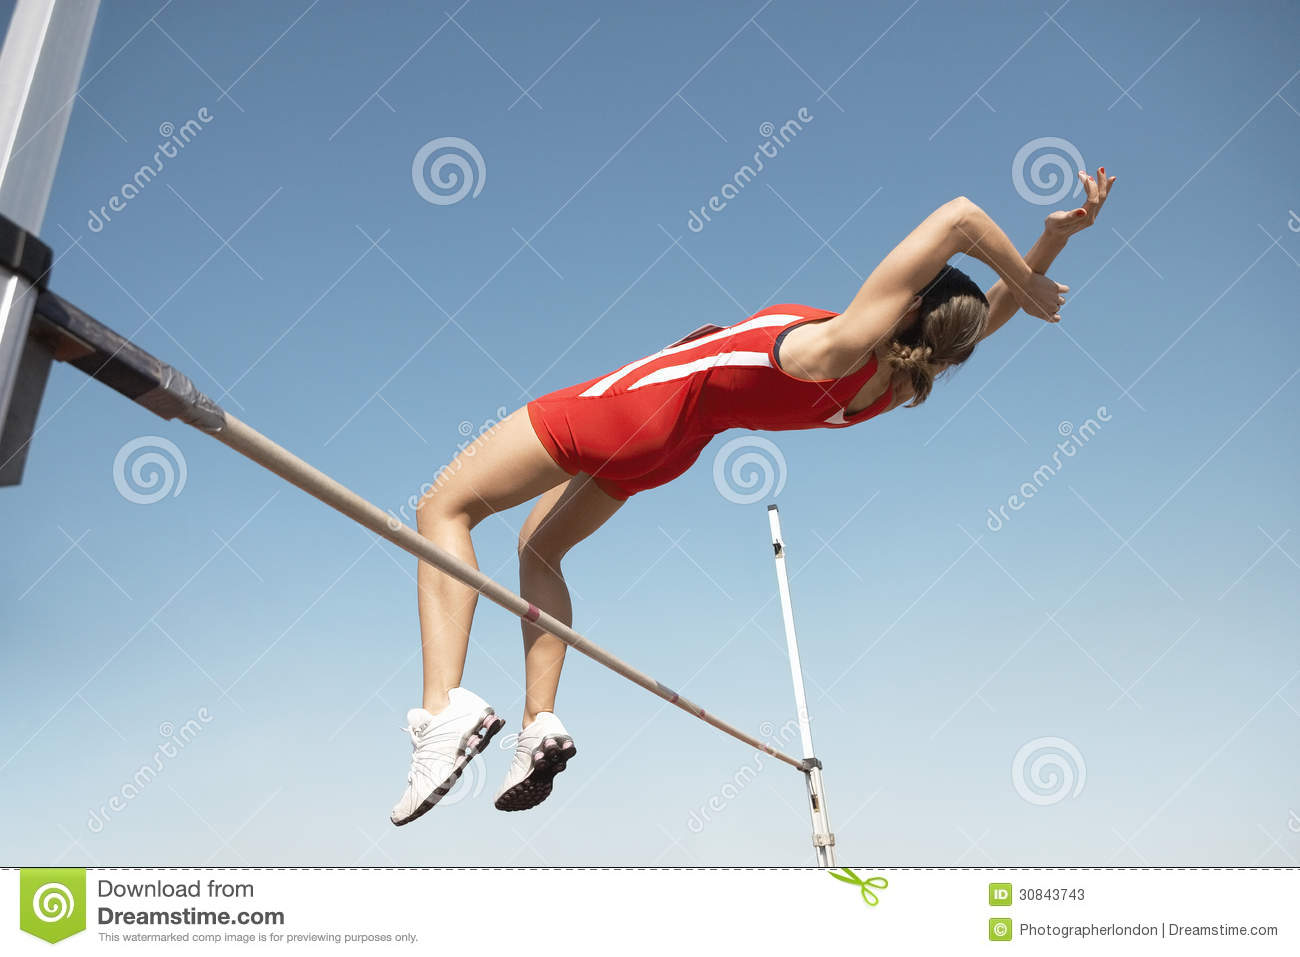 High Jumper In Midair Over Bar